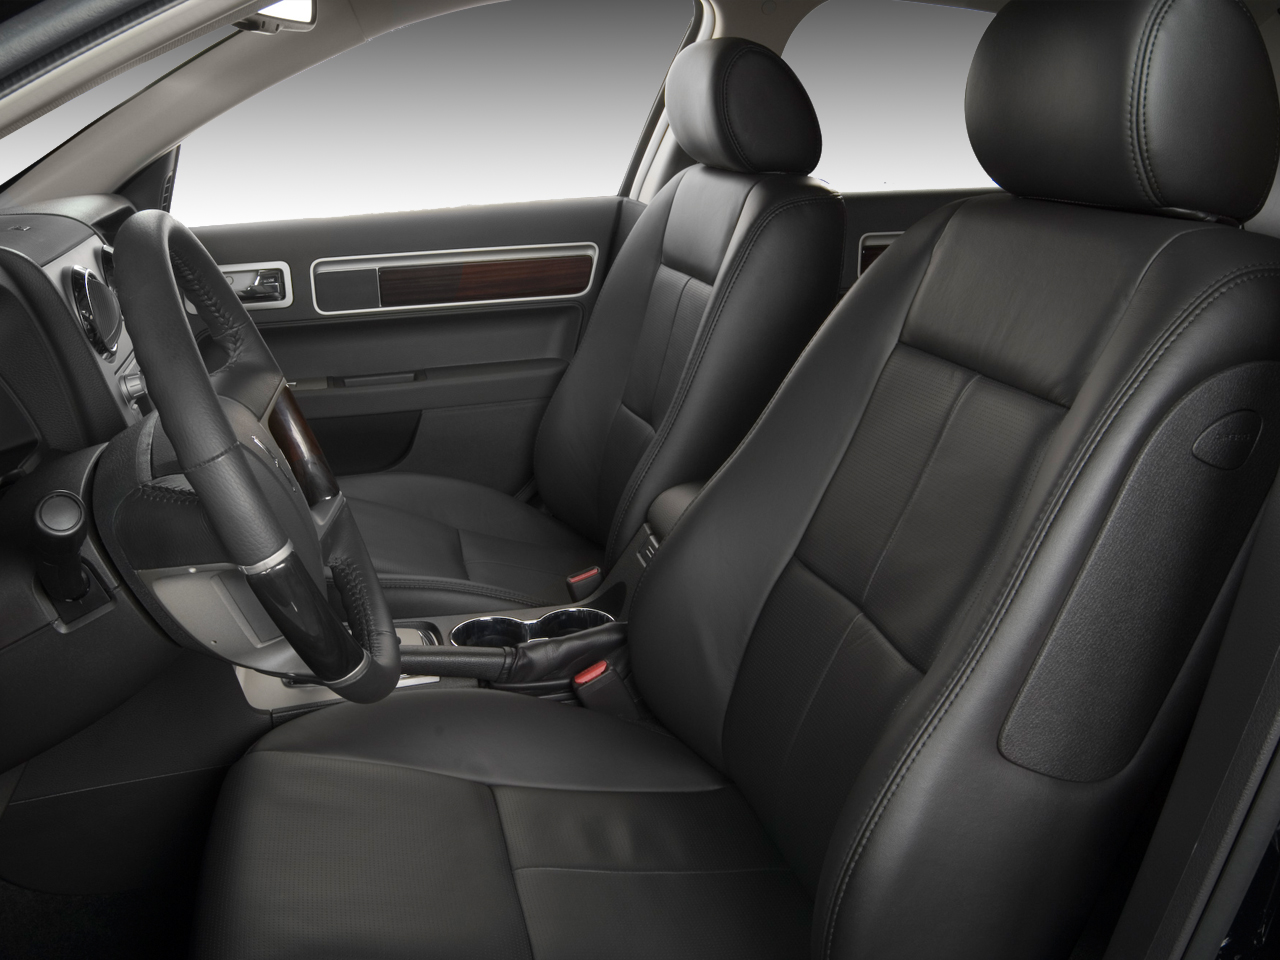 2008 Lincoln MKZ - Lincoln Luxury Sedan Review ...